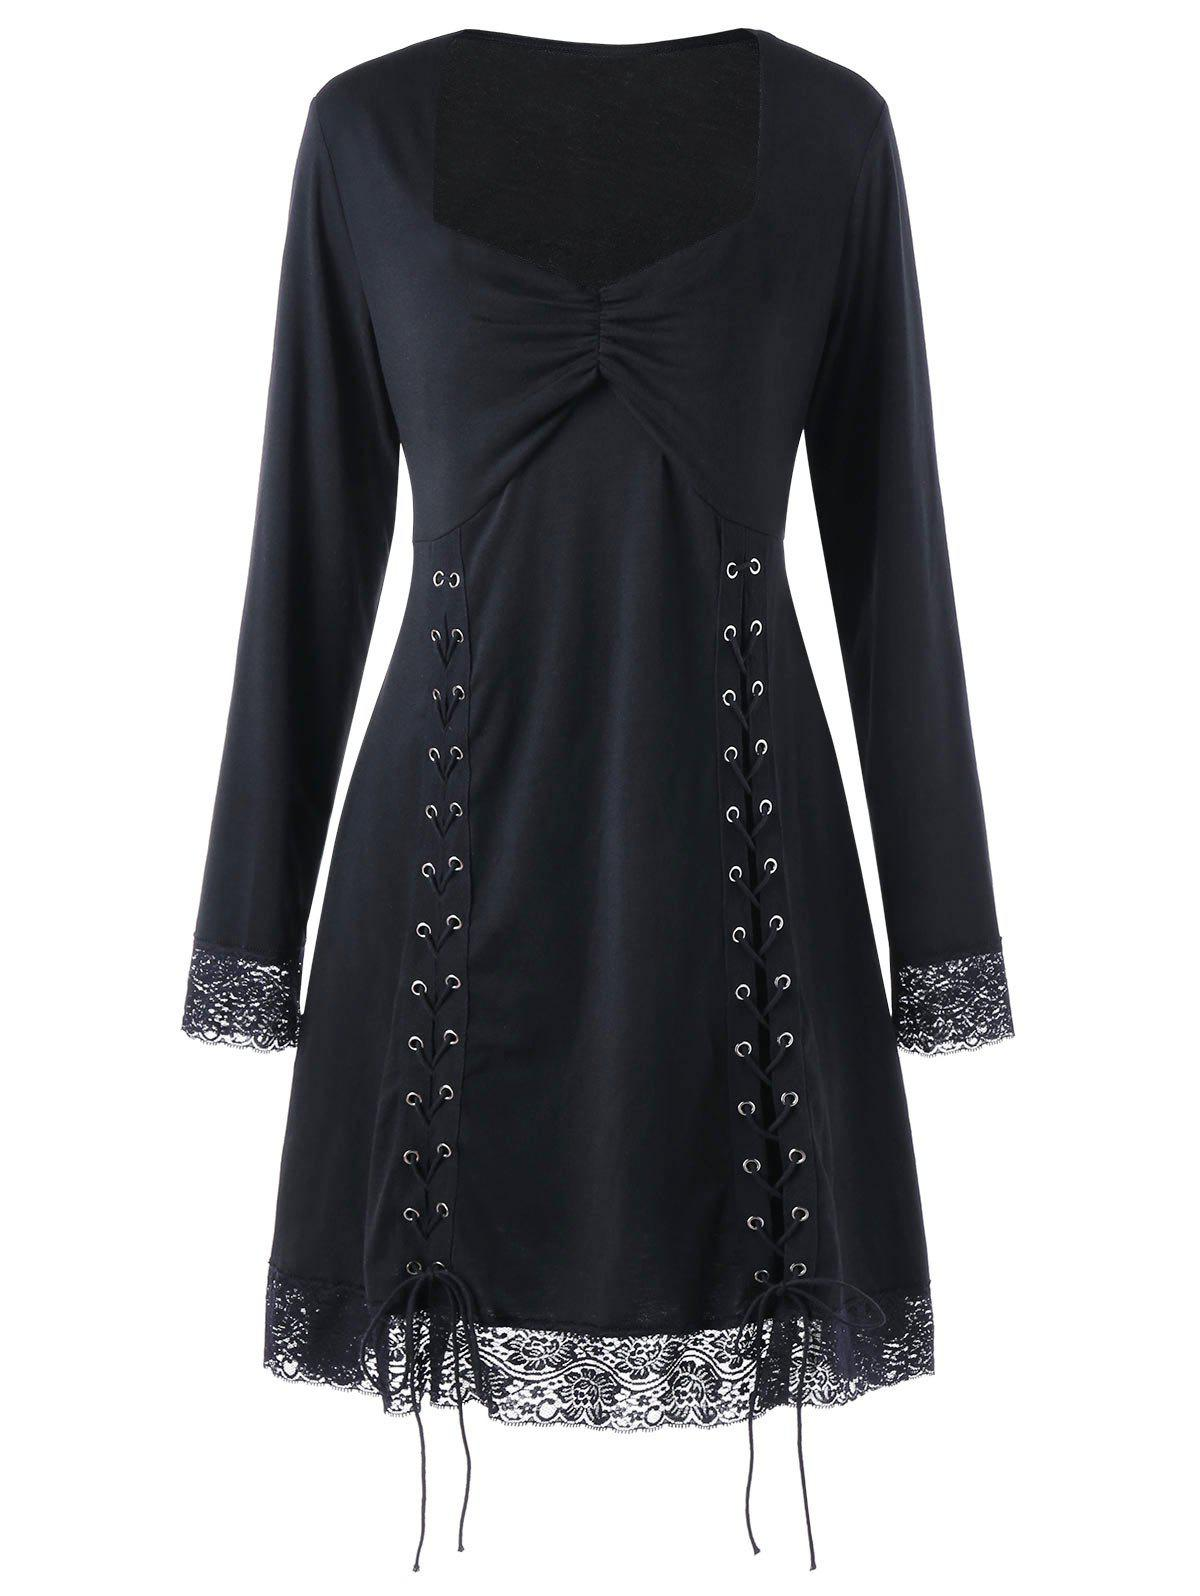 Plus Size Lace Trimmed Tie Up DressWOMEN<br><br>Size: 4XL; Color: BLACK; Style: Brief; Material: Polyester,Spandex; Silhouette: A-Line; Dresses Length: Mini; Neckline: Sweetheart Neck; Sleeve Length: Long Sleeves; Embellishment: Lace; Pattern Type: Solid Color; With Belt: No; Season: Fall,Spring,Winter; Weight: 0.3800kg; Package Contents: 1 x Dress;